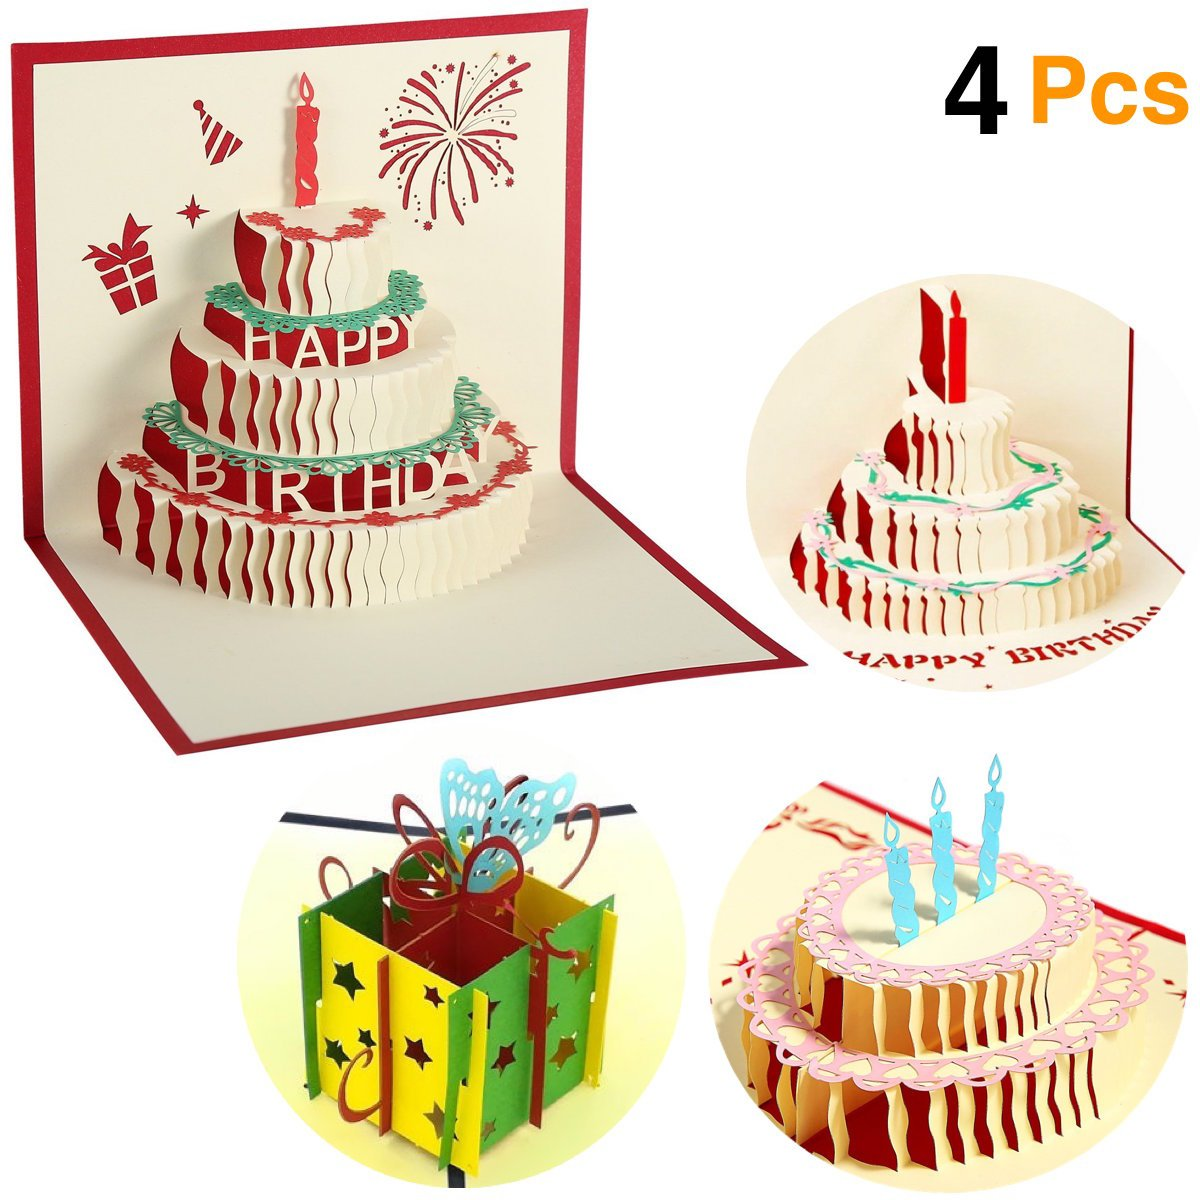 Amazon ohill 4 pcs 3d pop up birthday cards laser cut happy amazon ohill 4 pcs 3d pop up birthday cards laser cut happy birthday greeting cards with bookmark office products kristyandbryce Image collections